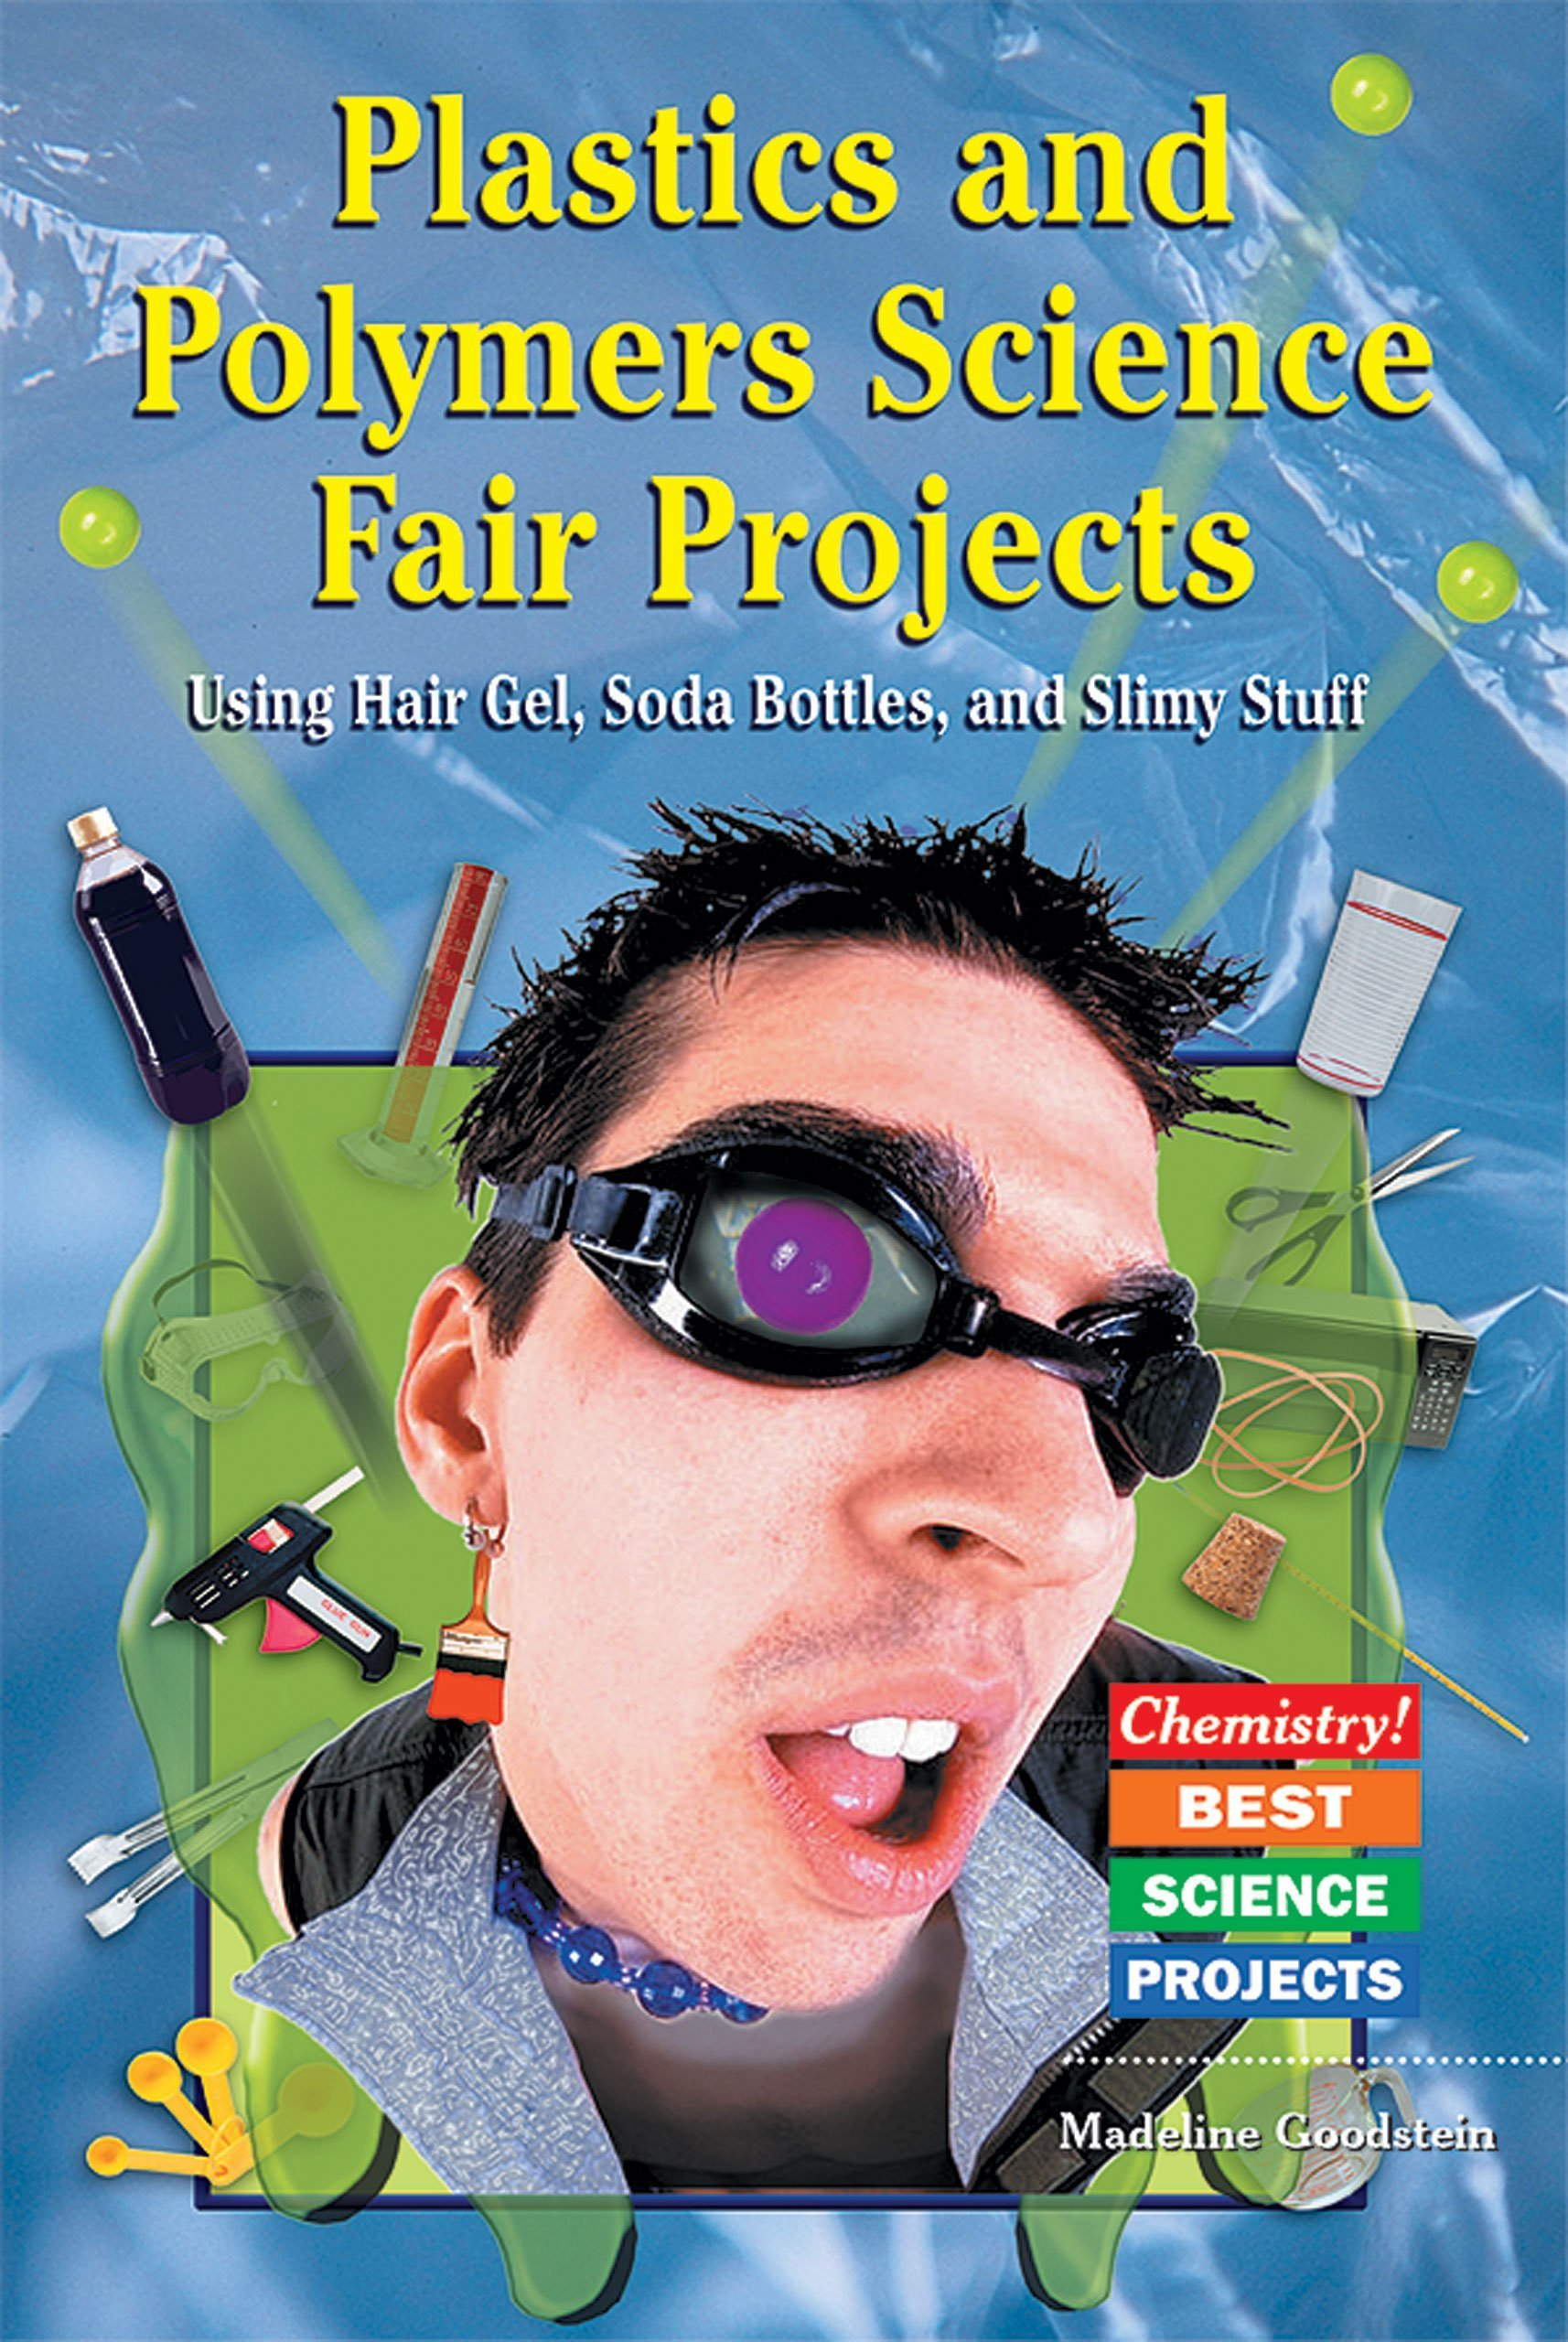 Amazon Plastics And Polymers Science Fair Projects Using Hair Gel Soda Bottles Slimy Stuff Chemistry Best 9780766021235